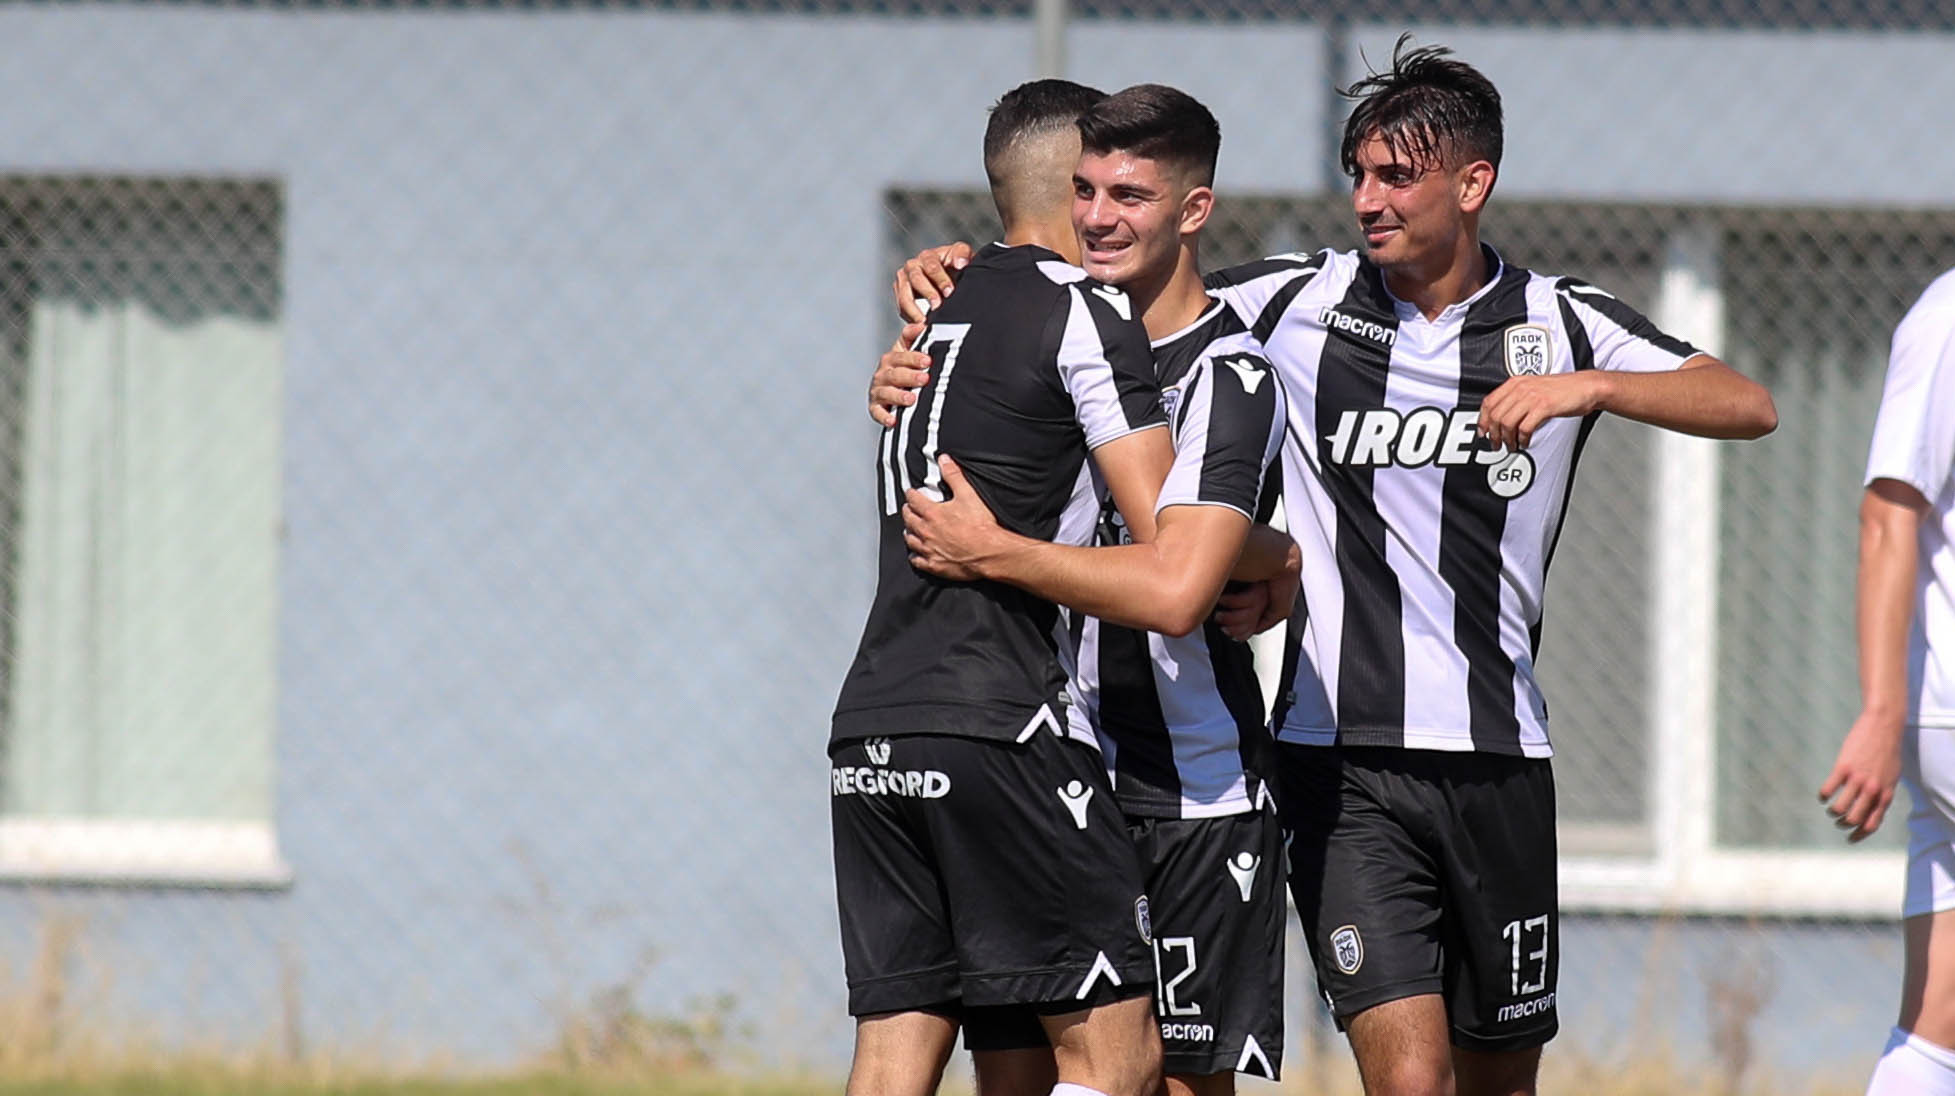 PAOK U19 – Apollon Smyrni U19: Highlights